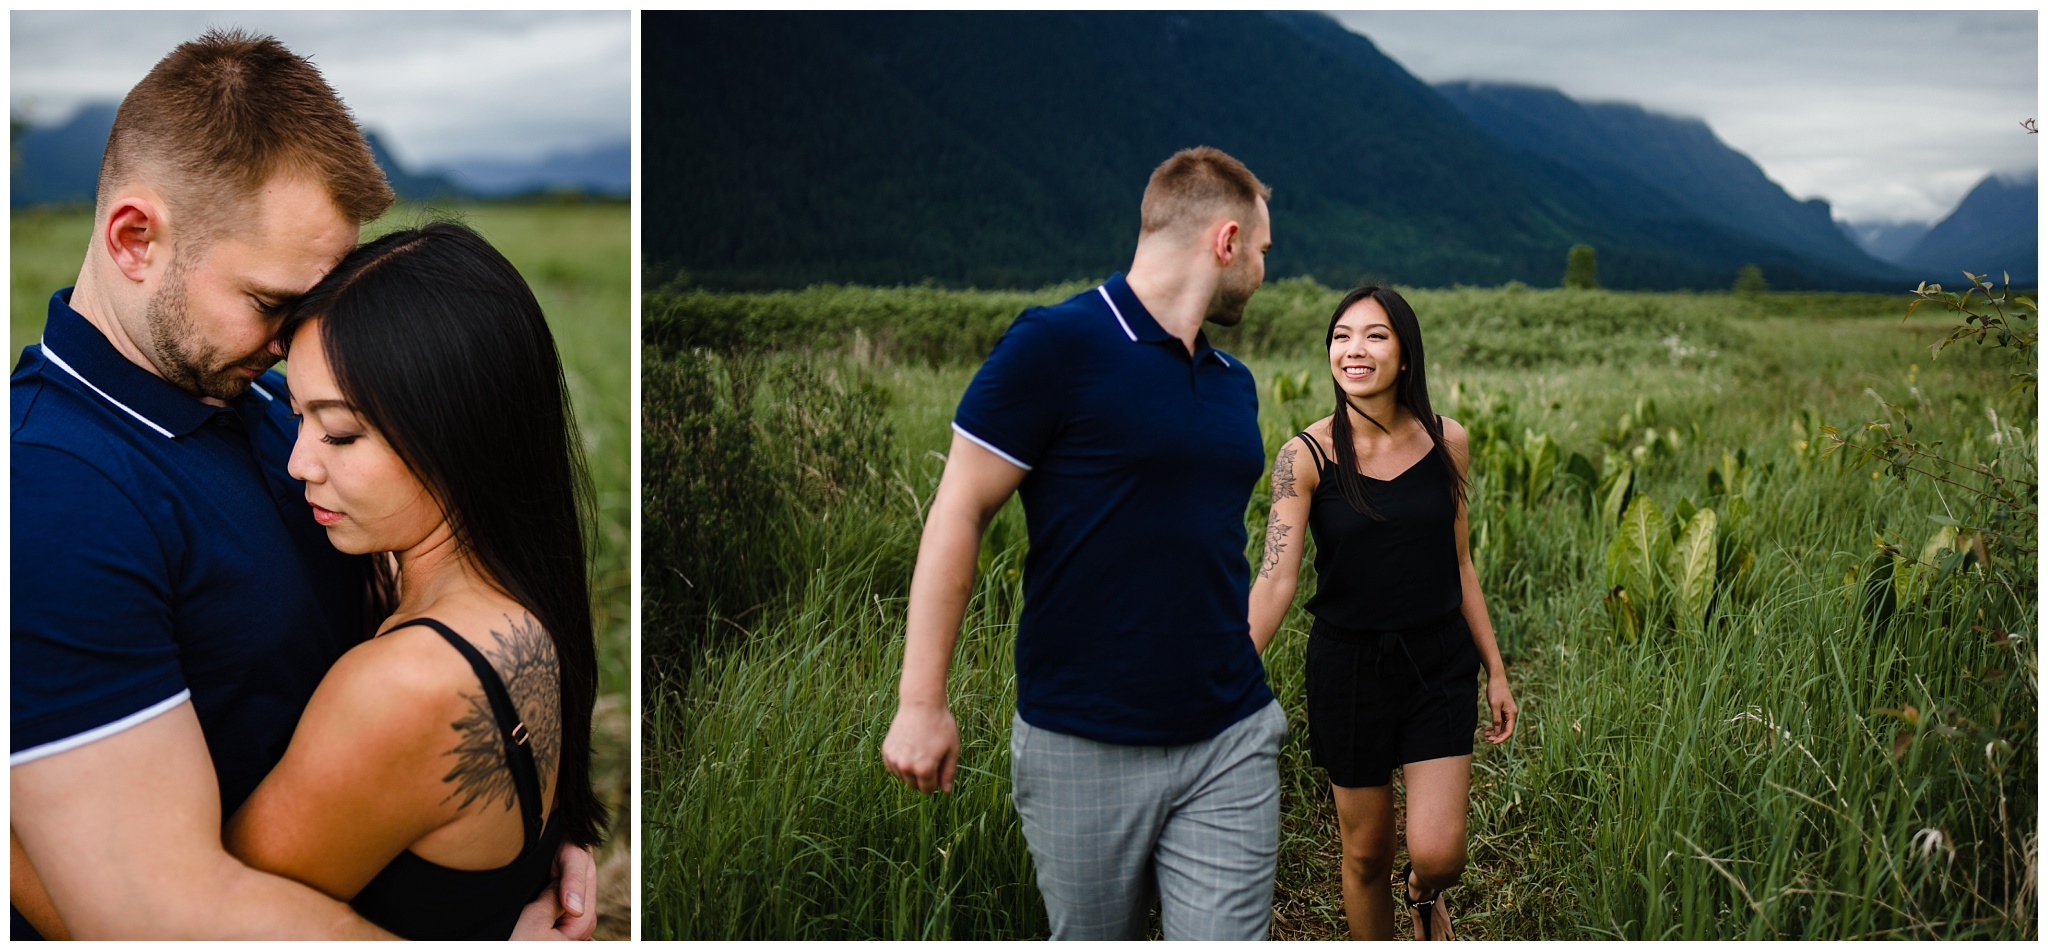 Pitt Lake Engagement Photos Maple Ridge Candid Fun Romantic Couples Photography_0002.jpg